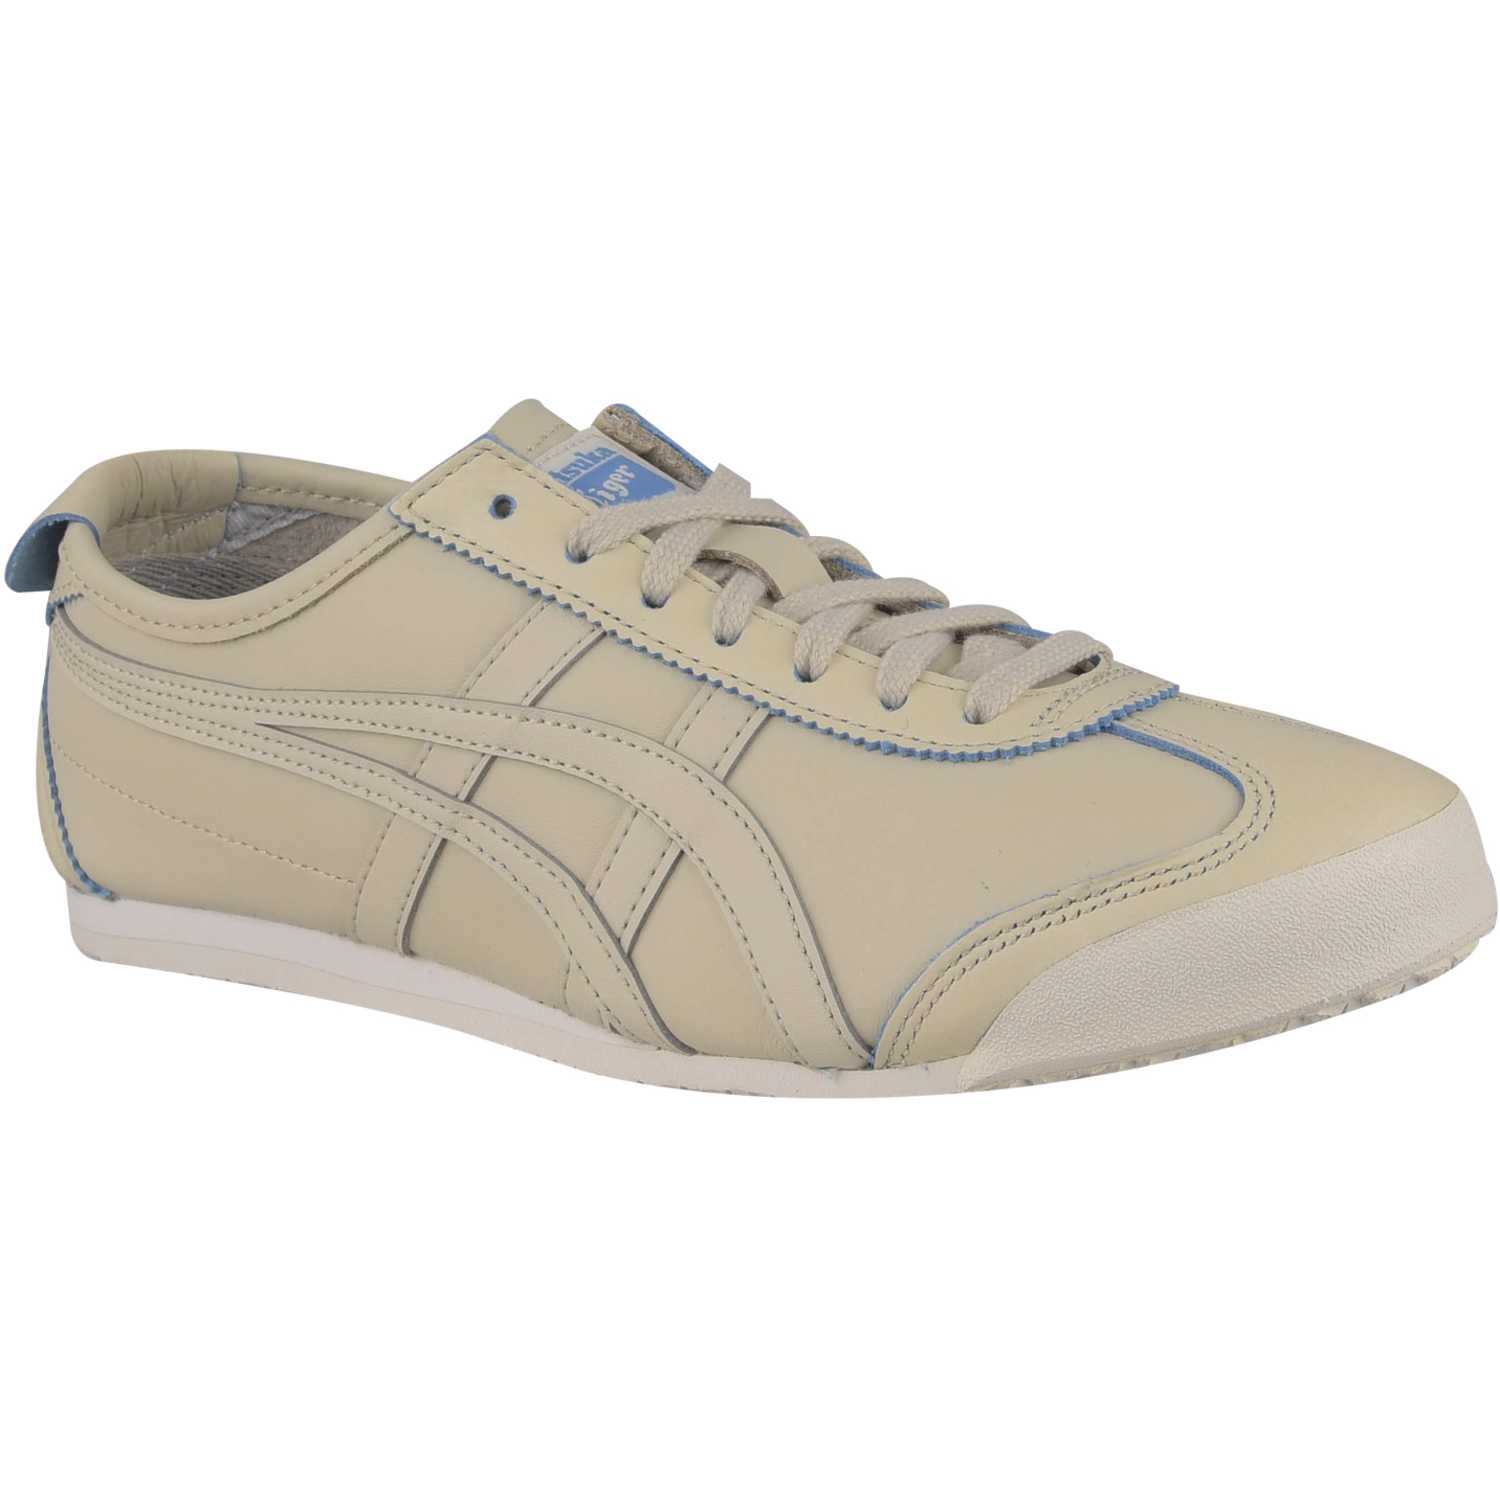 Asics mexico 66 Beige Walking